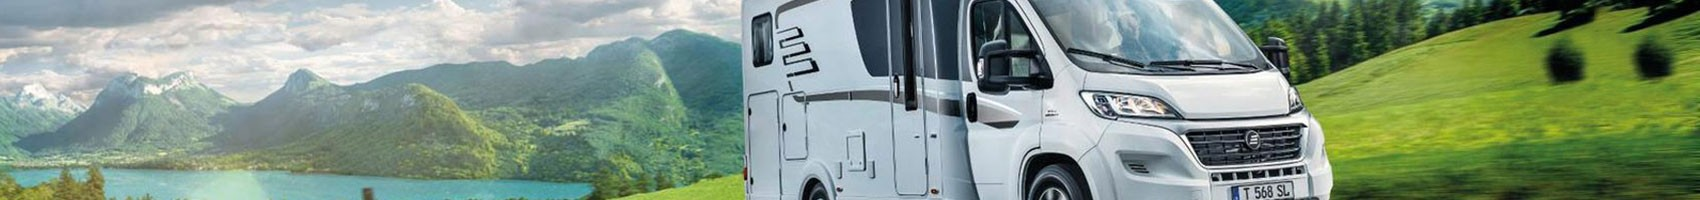 Popular Motorhome FAQs